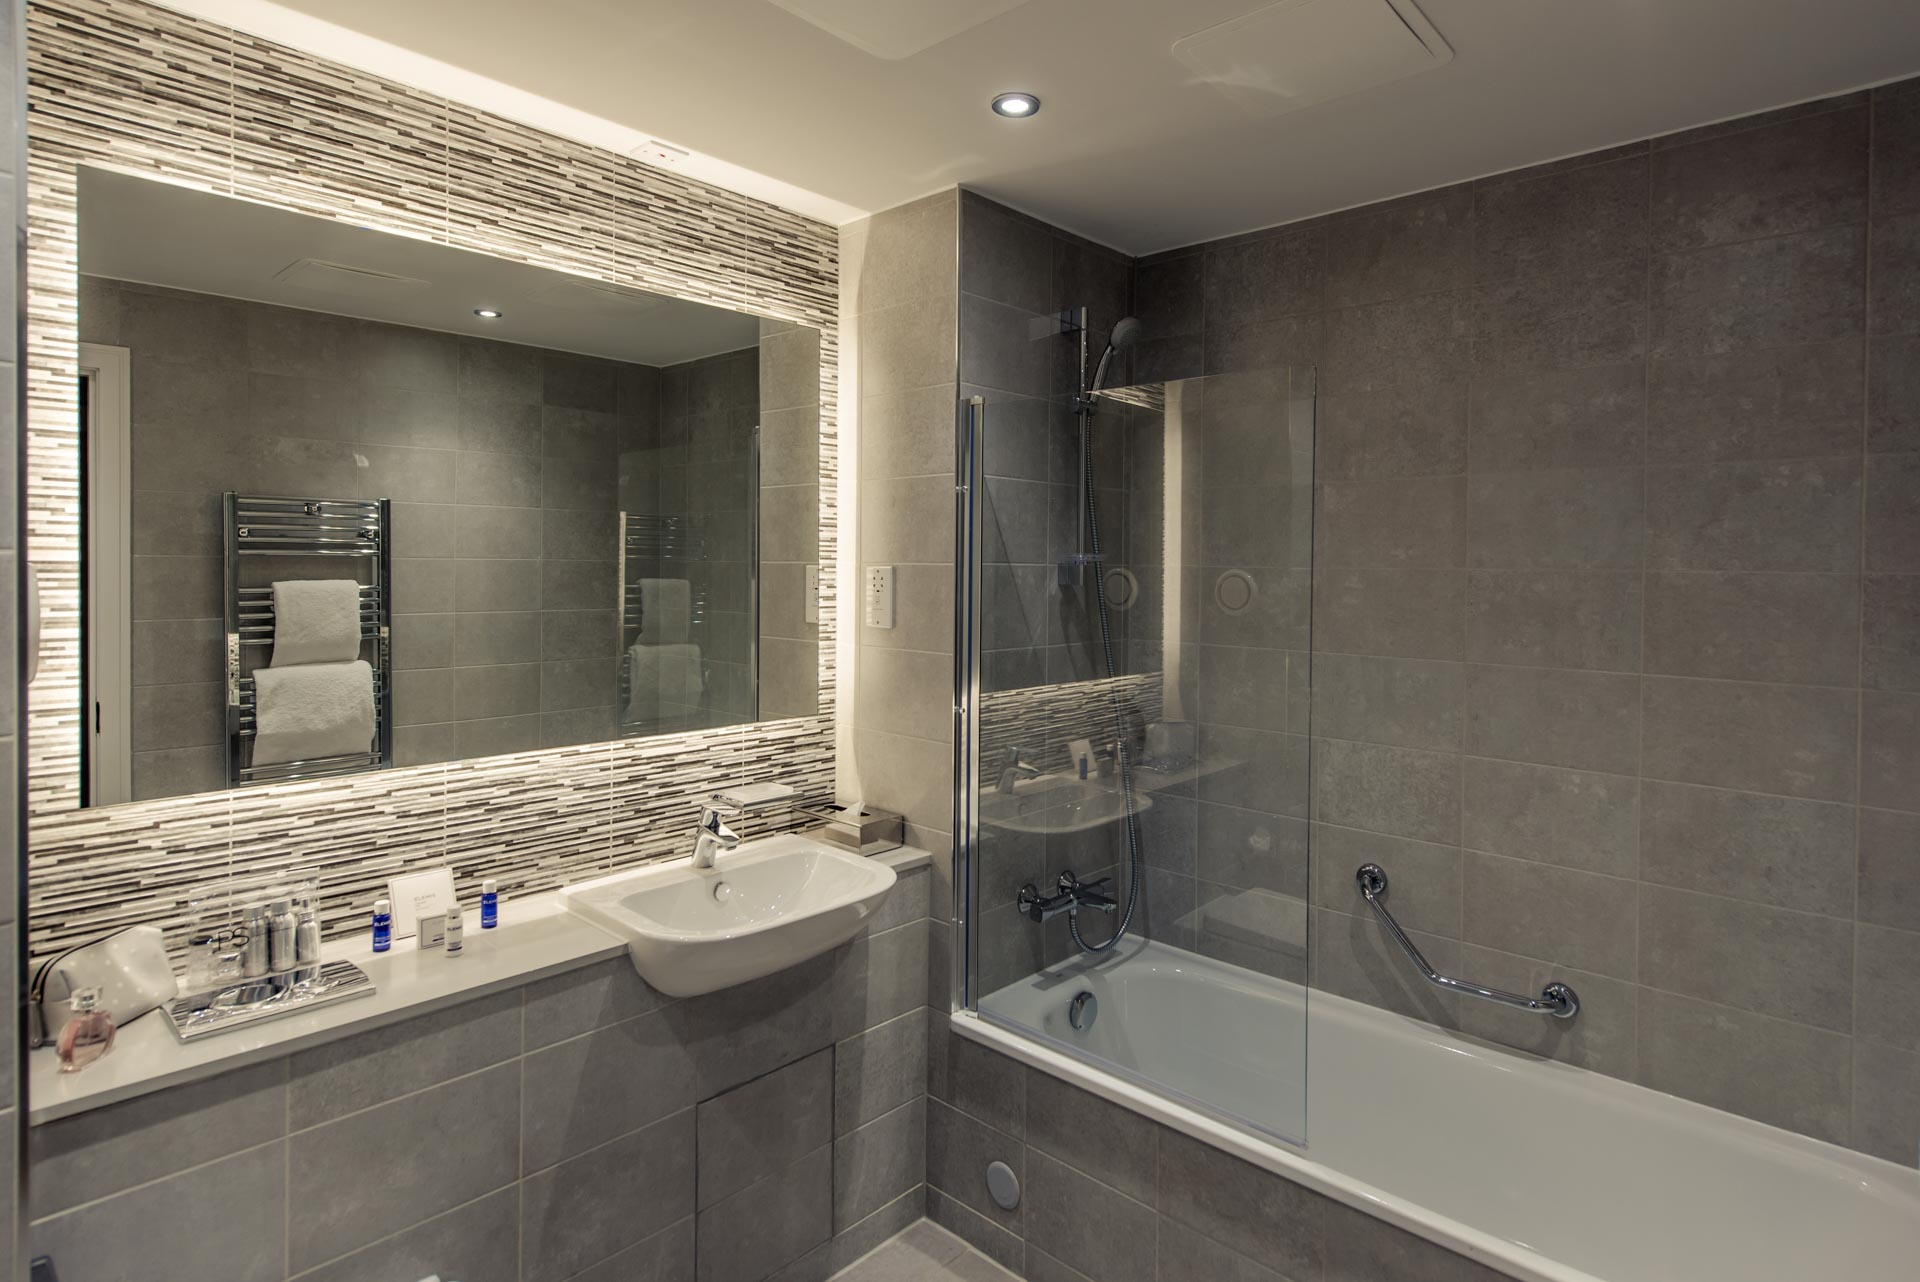 Modern bathroom PREMIER SUITES PLUS Glasgow Bath Street